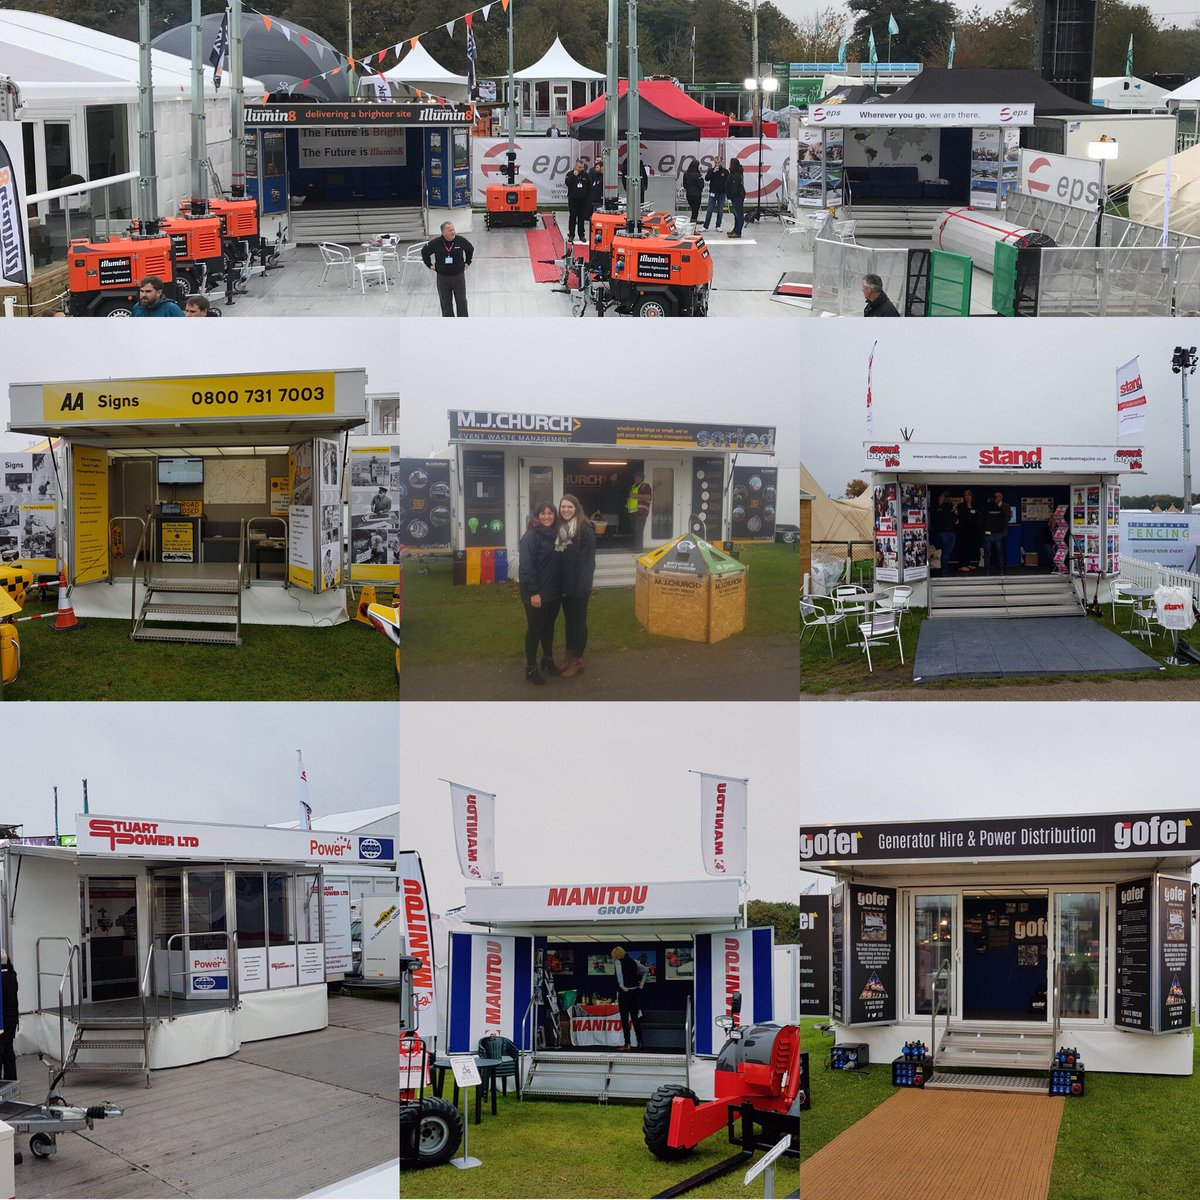 Wishing all our customers @TheShowmansShow a great final day and thank you for choosing us to help you at this great event! #eventprof <br>http://pic.twitter.com/GoCF1PdeME